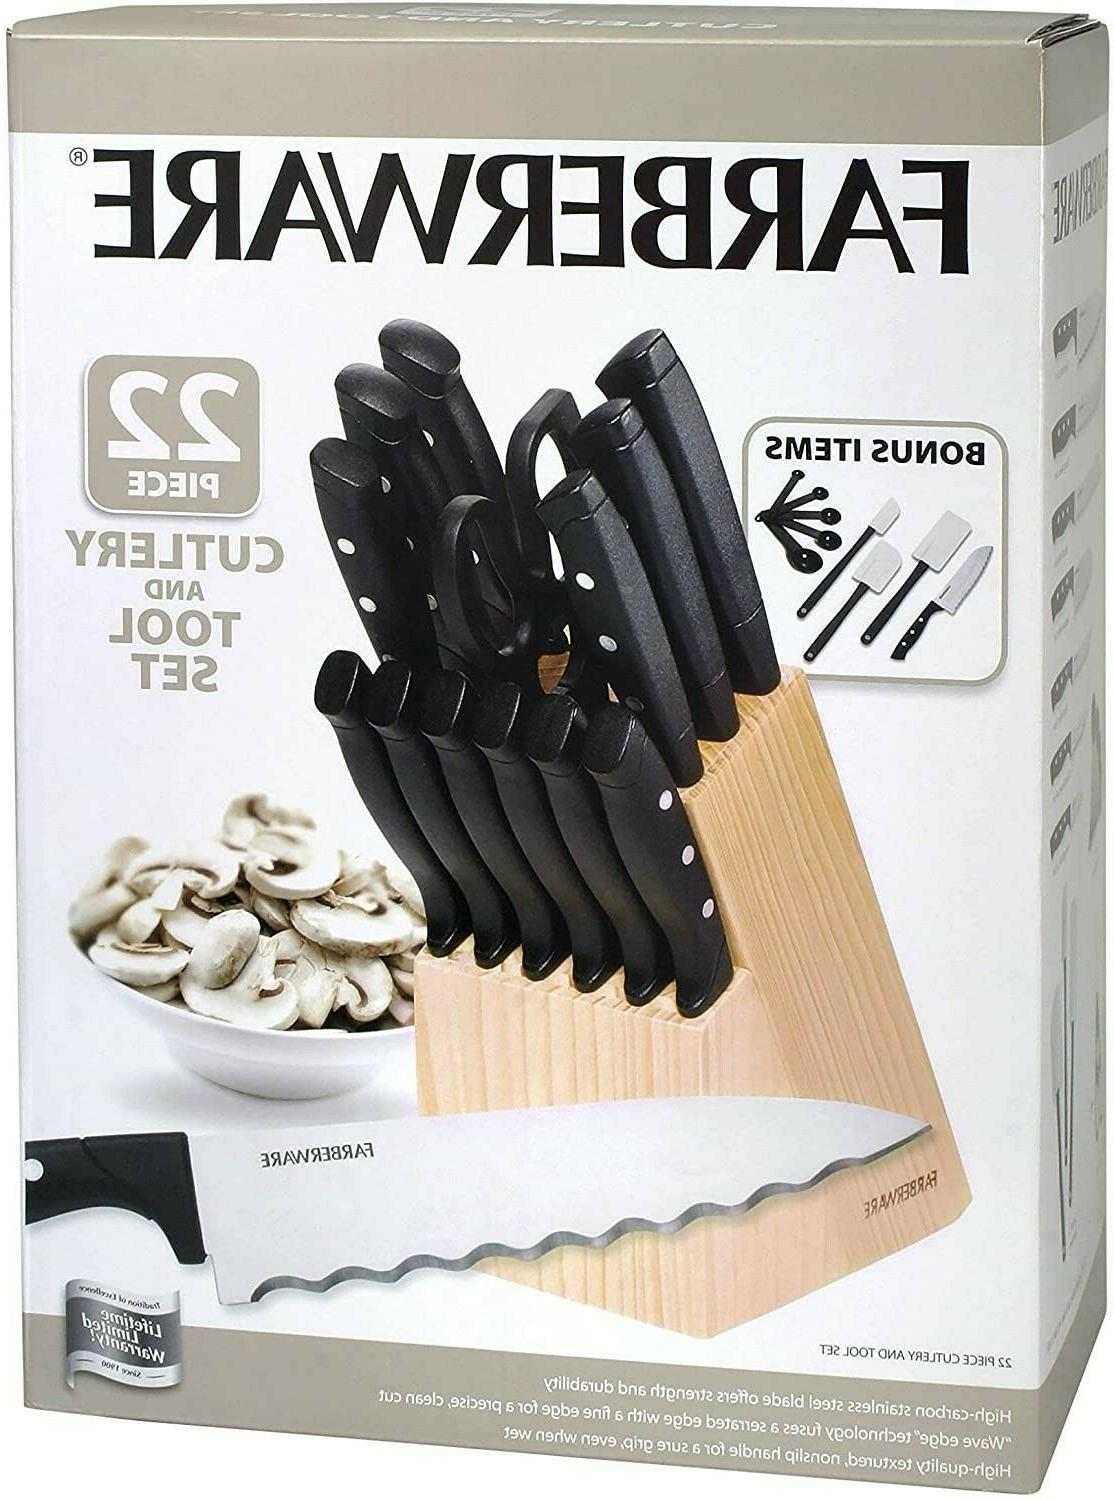 triple rivet gift stainless steel knife block